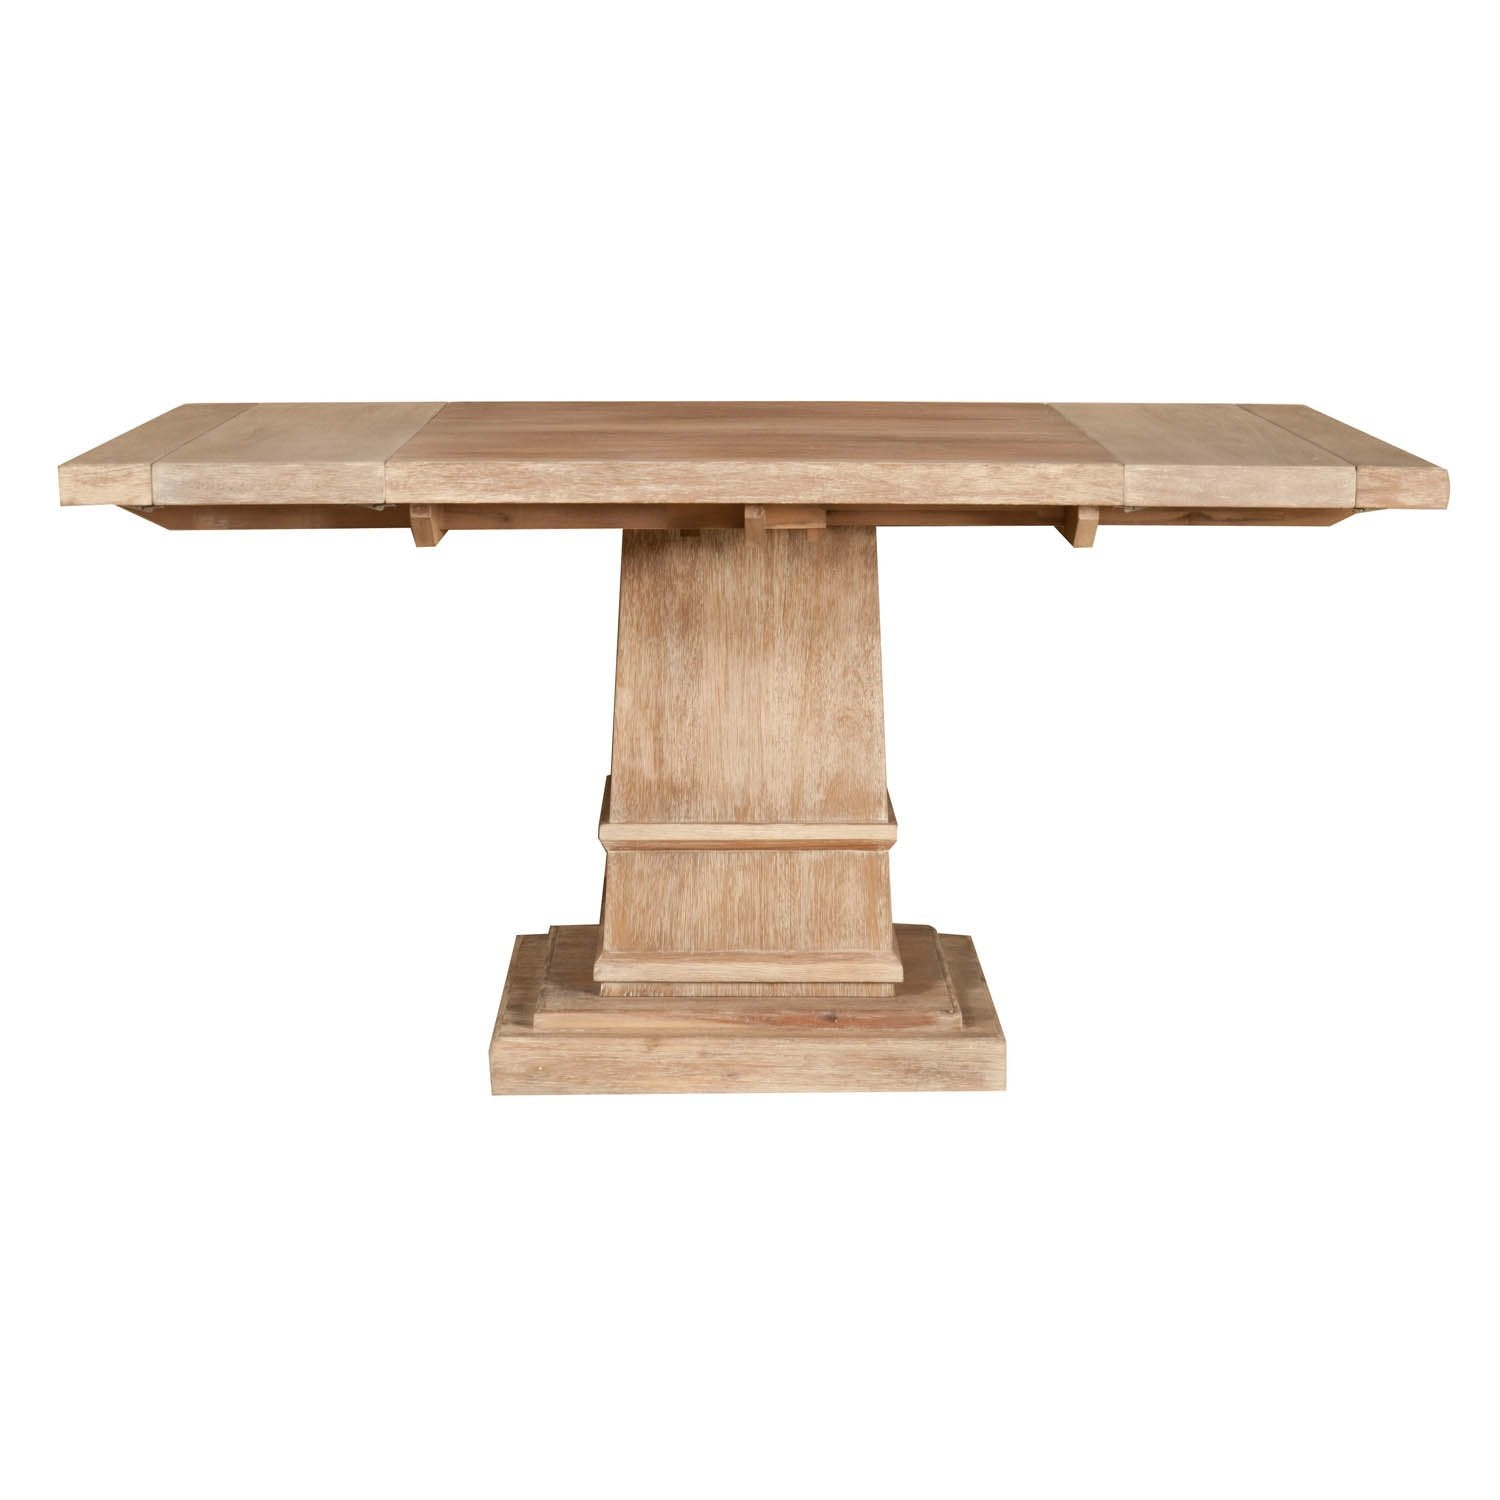 "Hudson 44"" Square Extension Dining Table in Stone Wash"